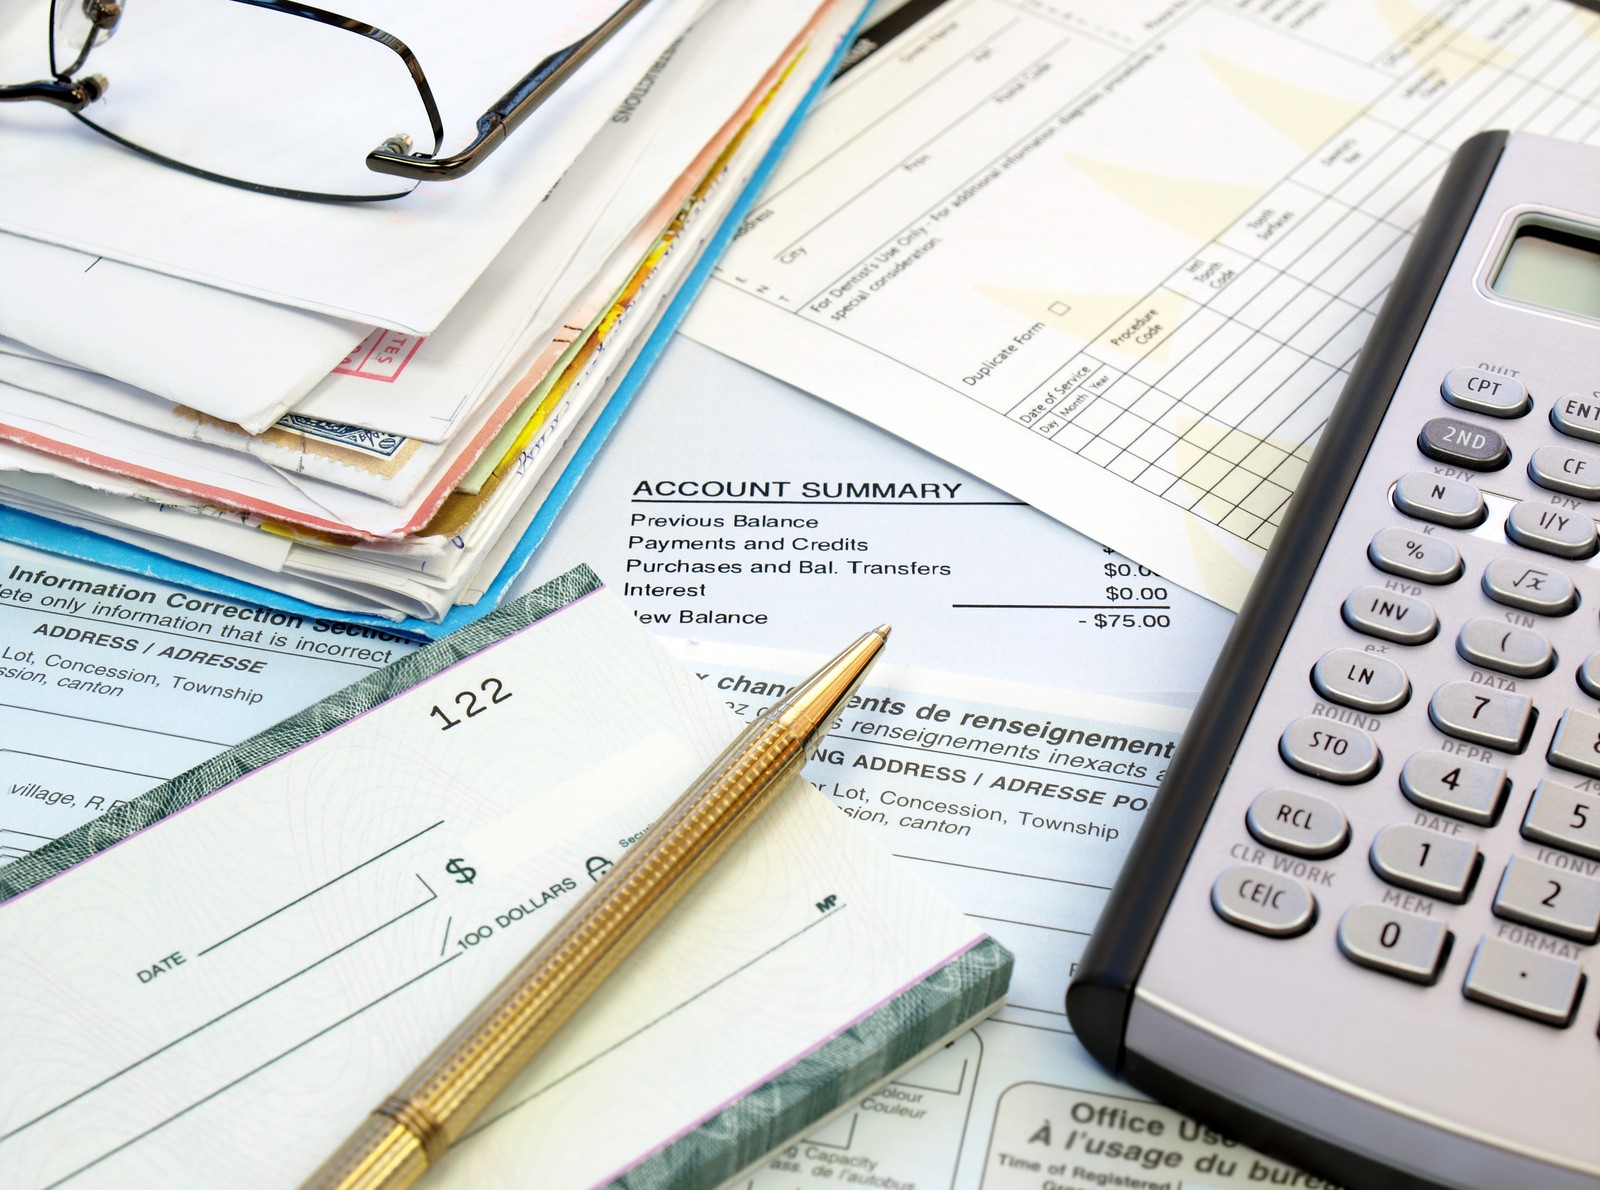 Ssdi Tax Issues